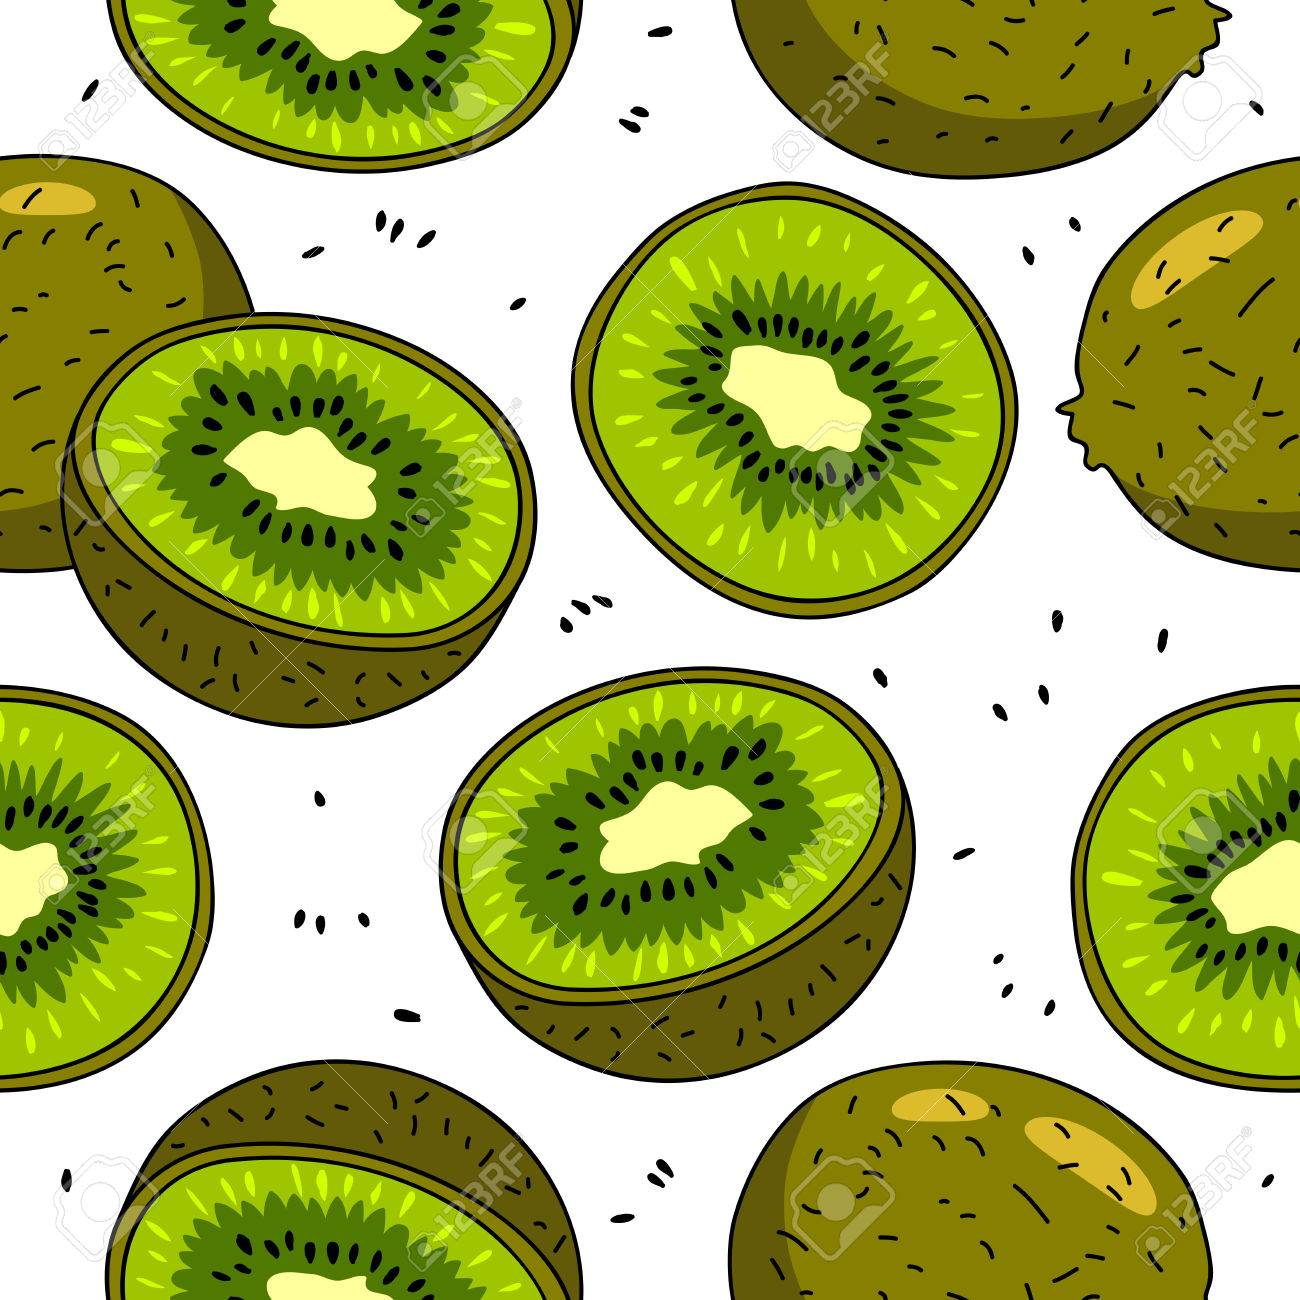 Seamless vector pattern of kiwi fruit on a white background. - 53742000